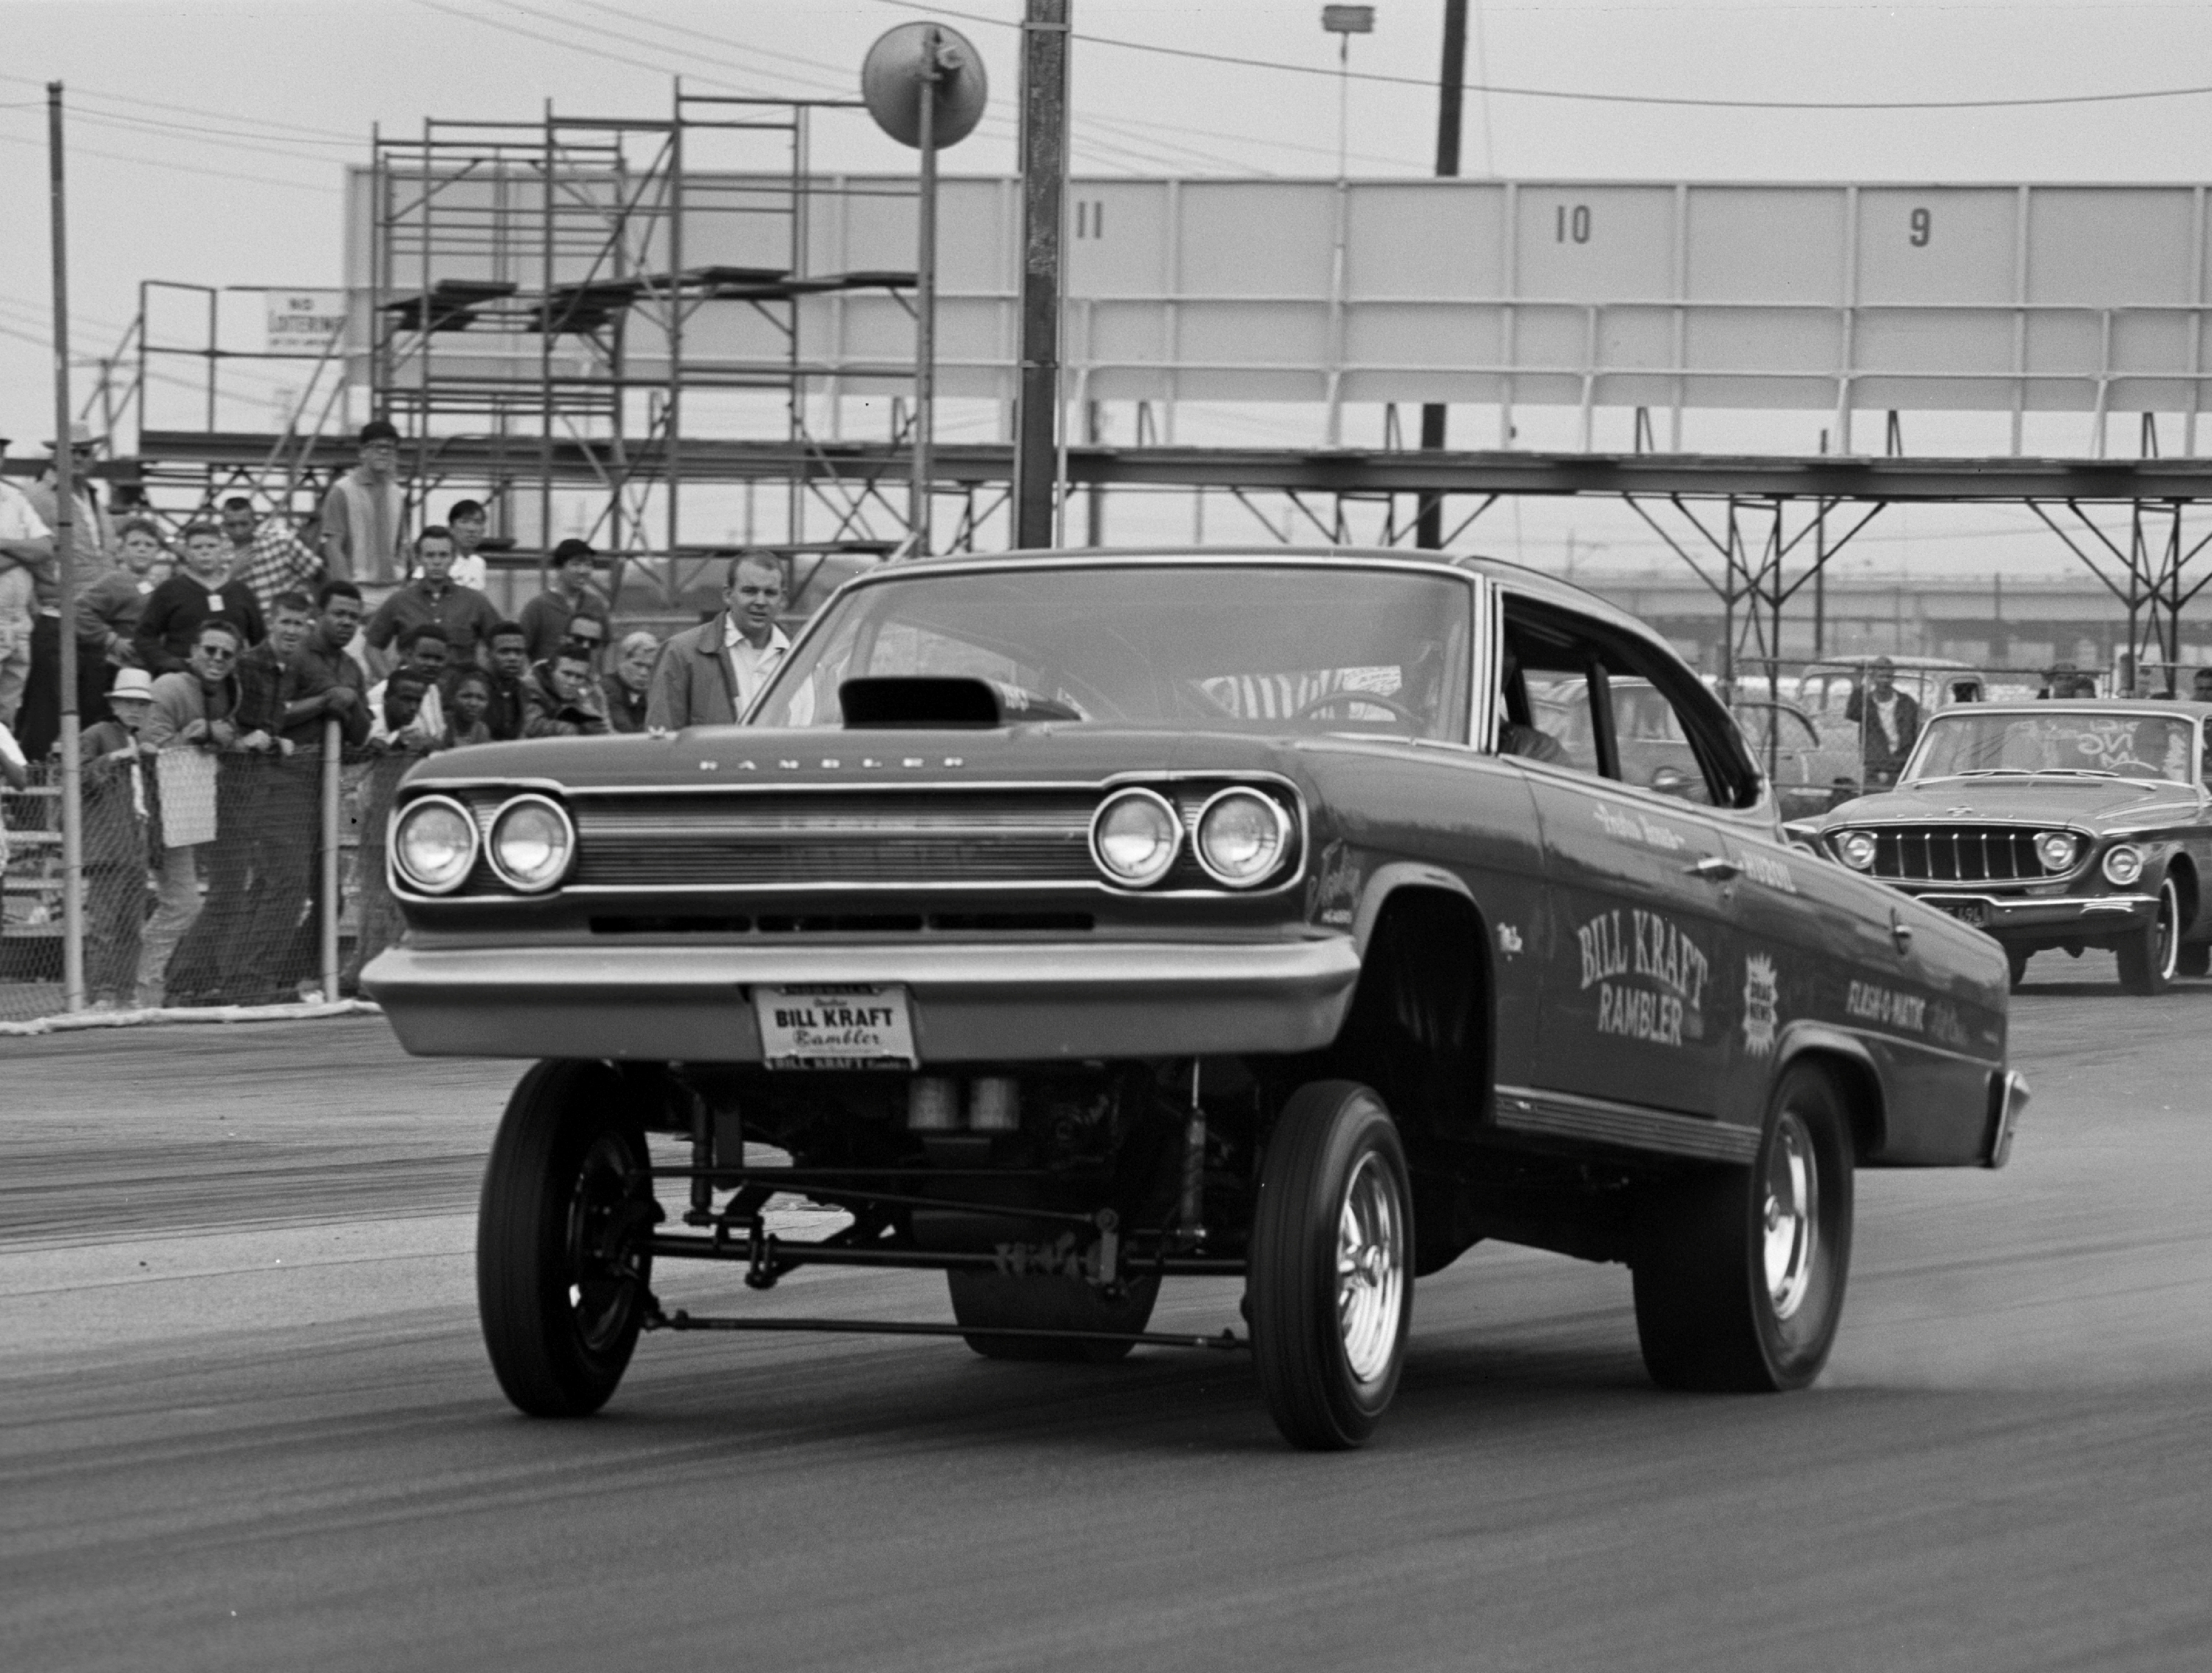 HOT ROD captured the Kraft Marlin's maiden shot at Lions in July '65. With the weight shift this beast is high ridin'.